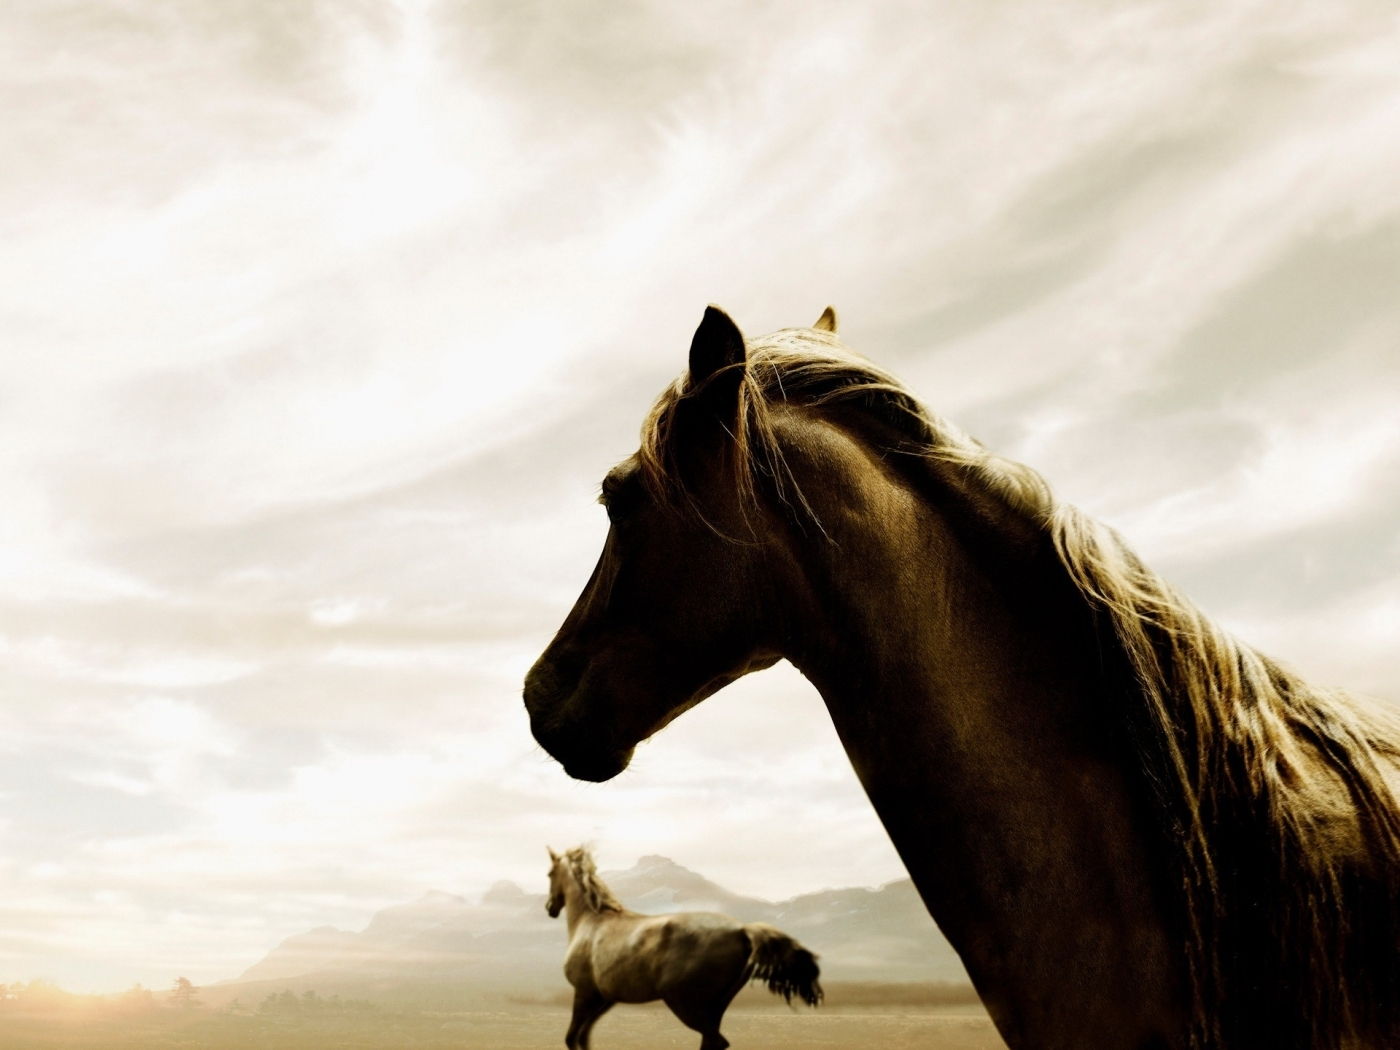 45145 download wallpaper Animals, Horses screensavers and pictures for free